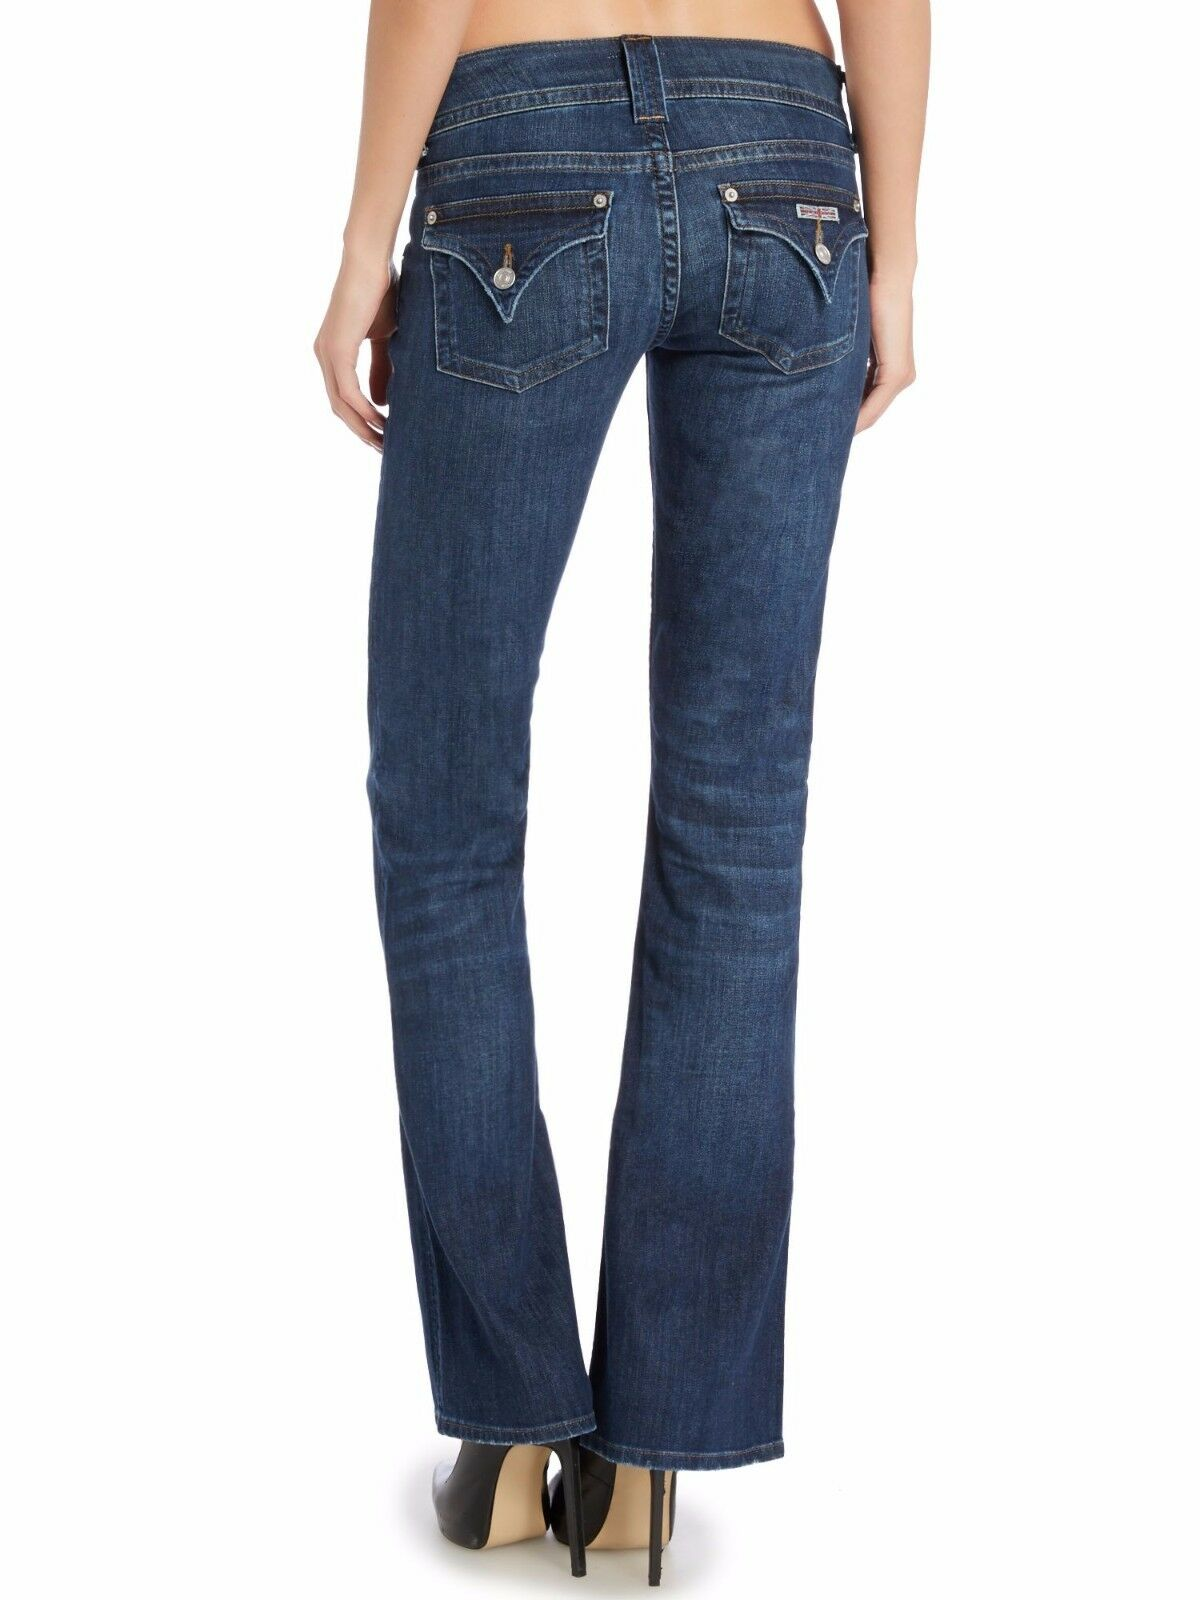 198 NWT HUDSON WOMEN Sz25 SIGNATURE BOOT-CUT STRETCH JEANS blueE ENLIGHTENED